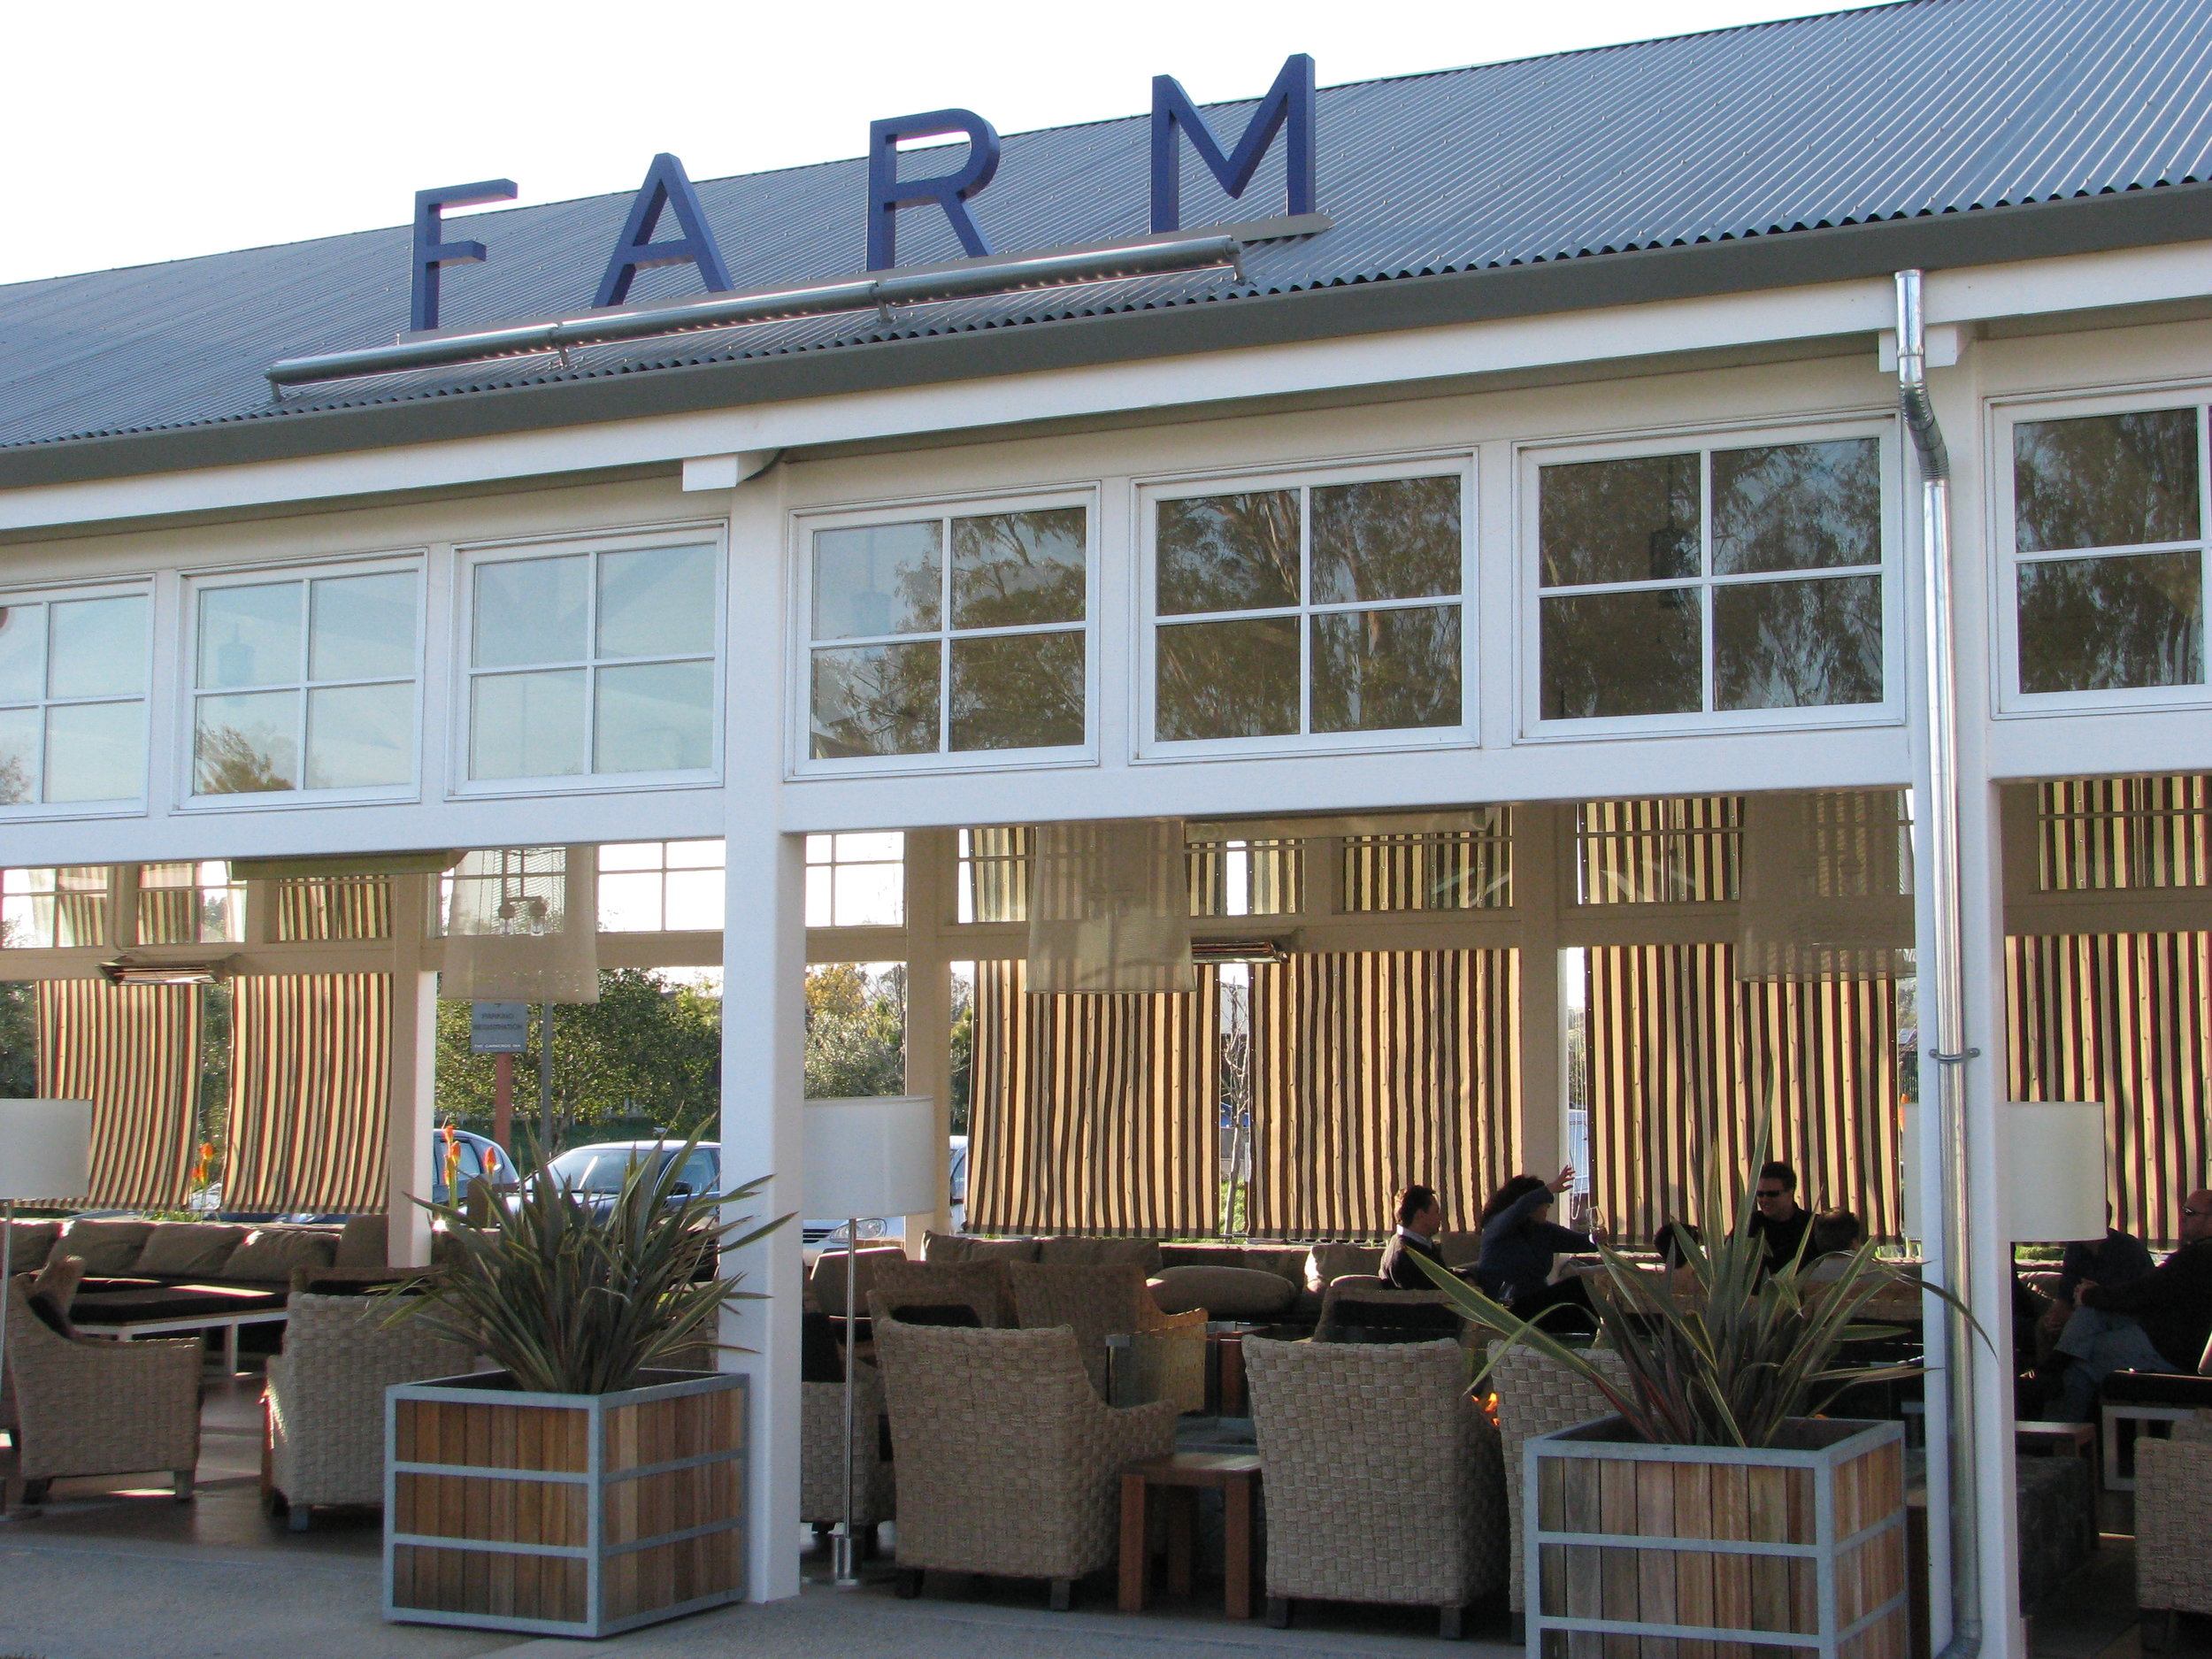 Farm Restaurant in Napa in the Carneros area